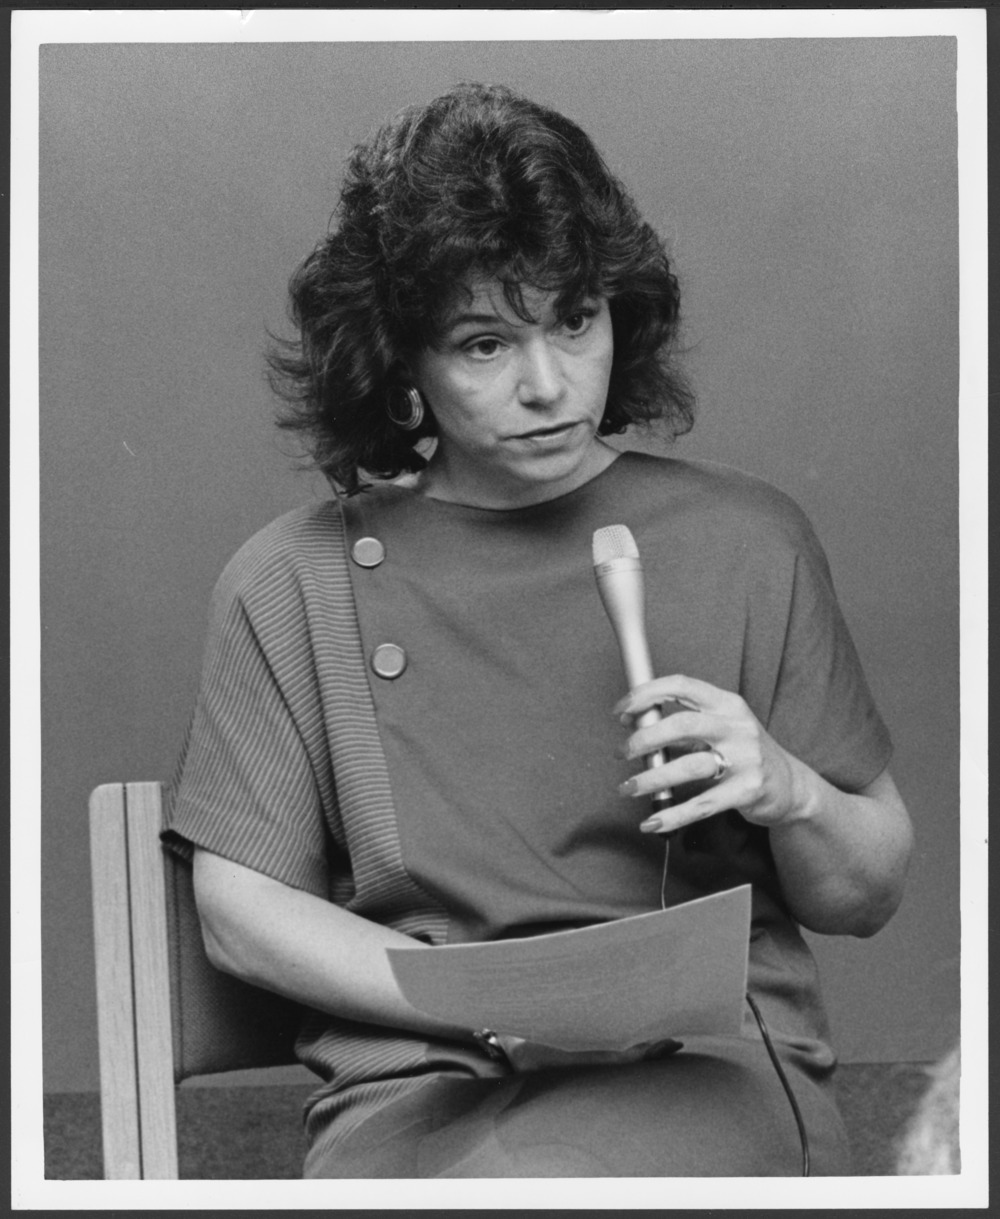 Menninger photograph collection - View of Dr. Meredith Maxifeld Titus holding a microphone. Envelope #2545